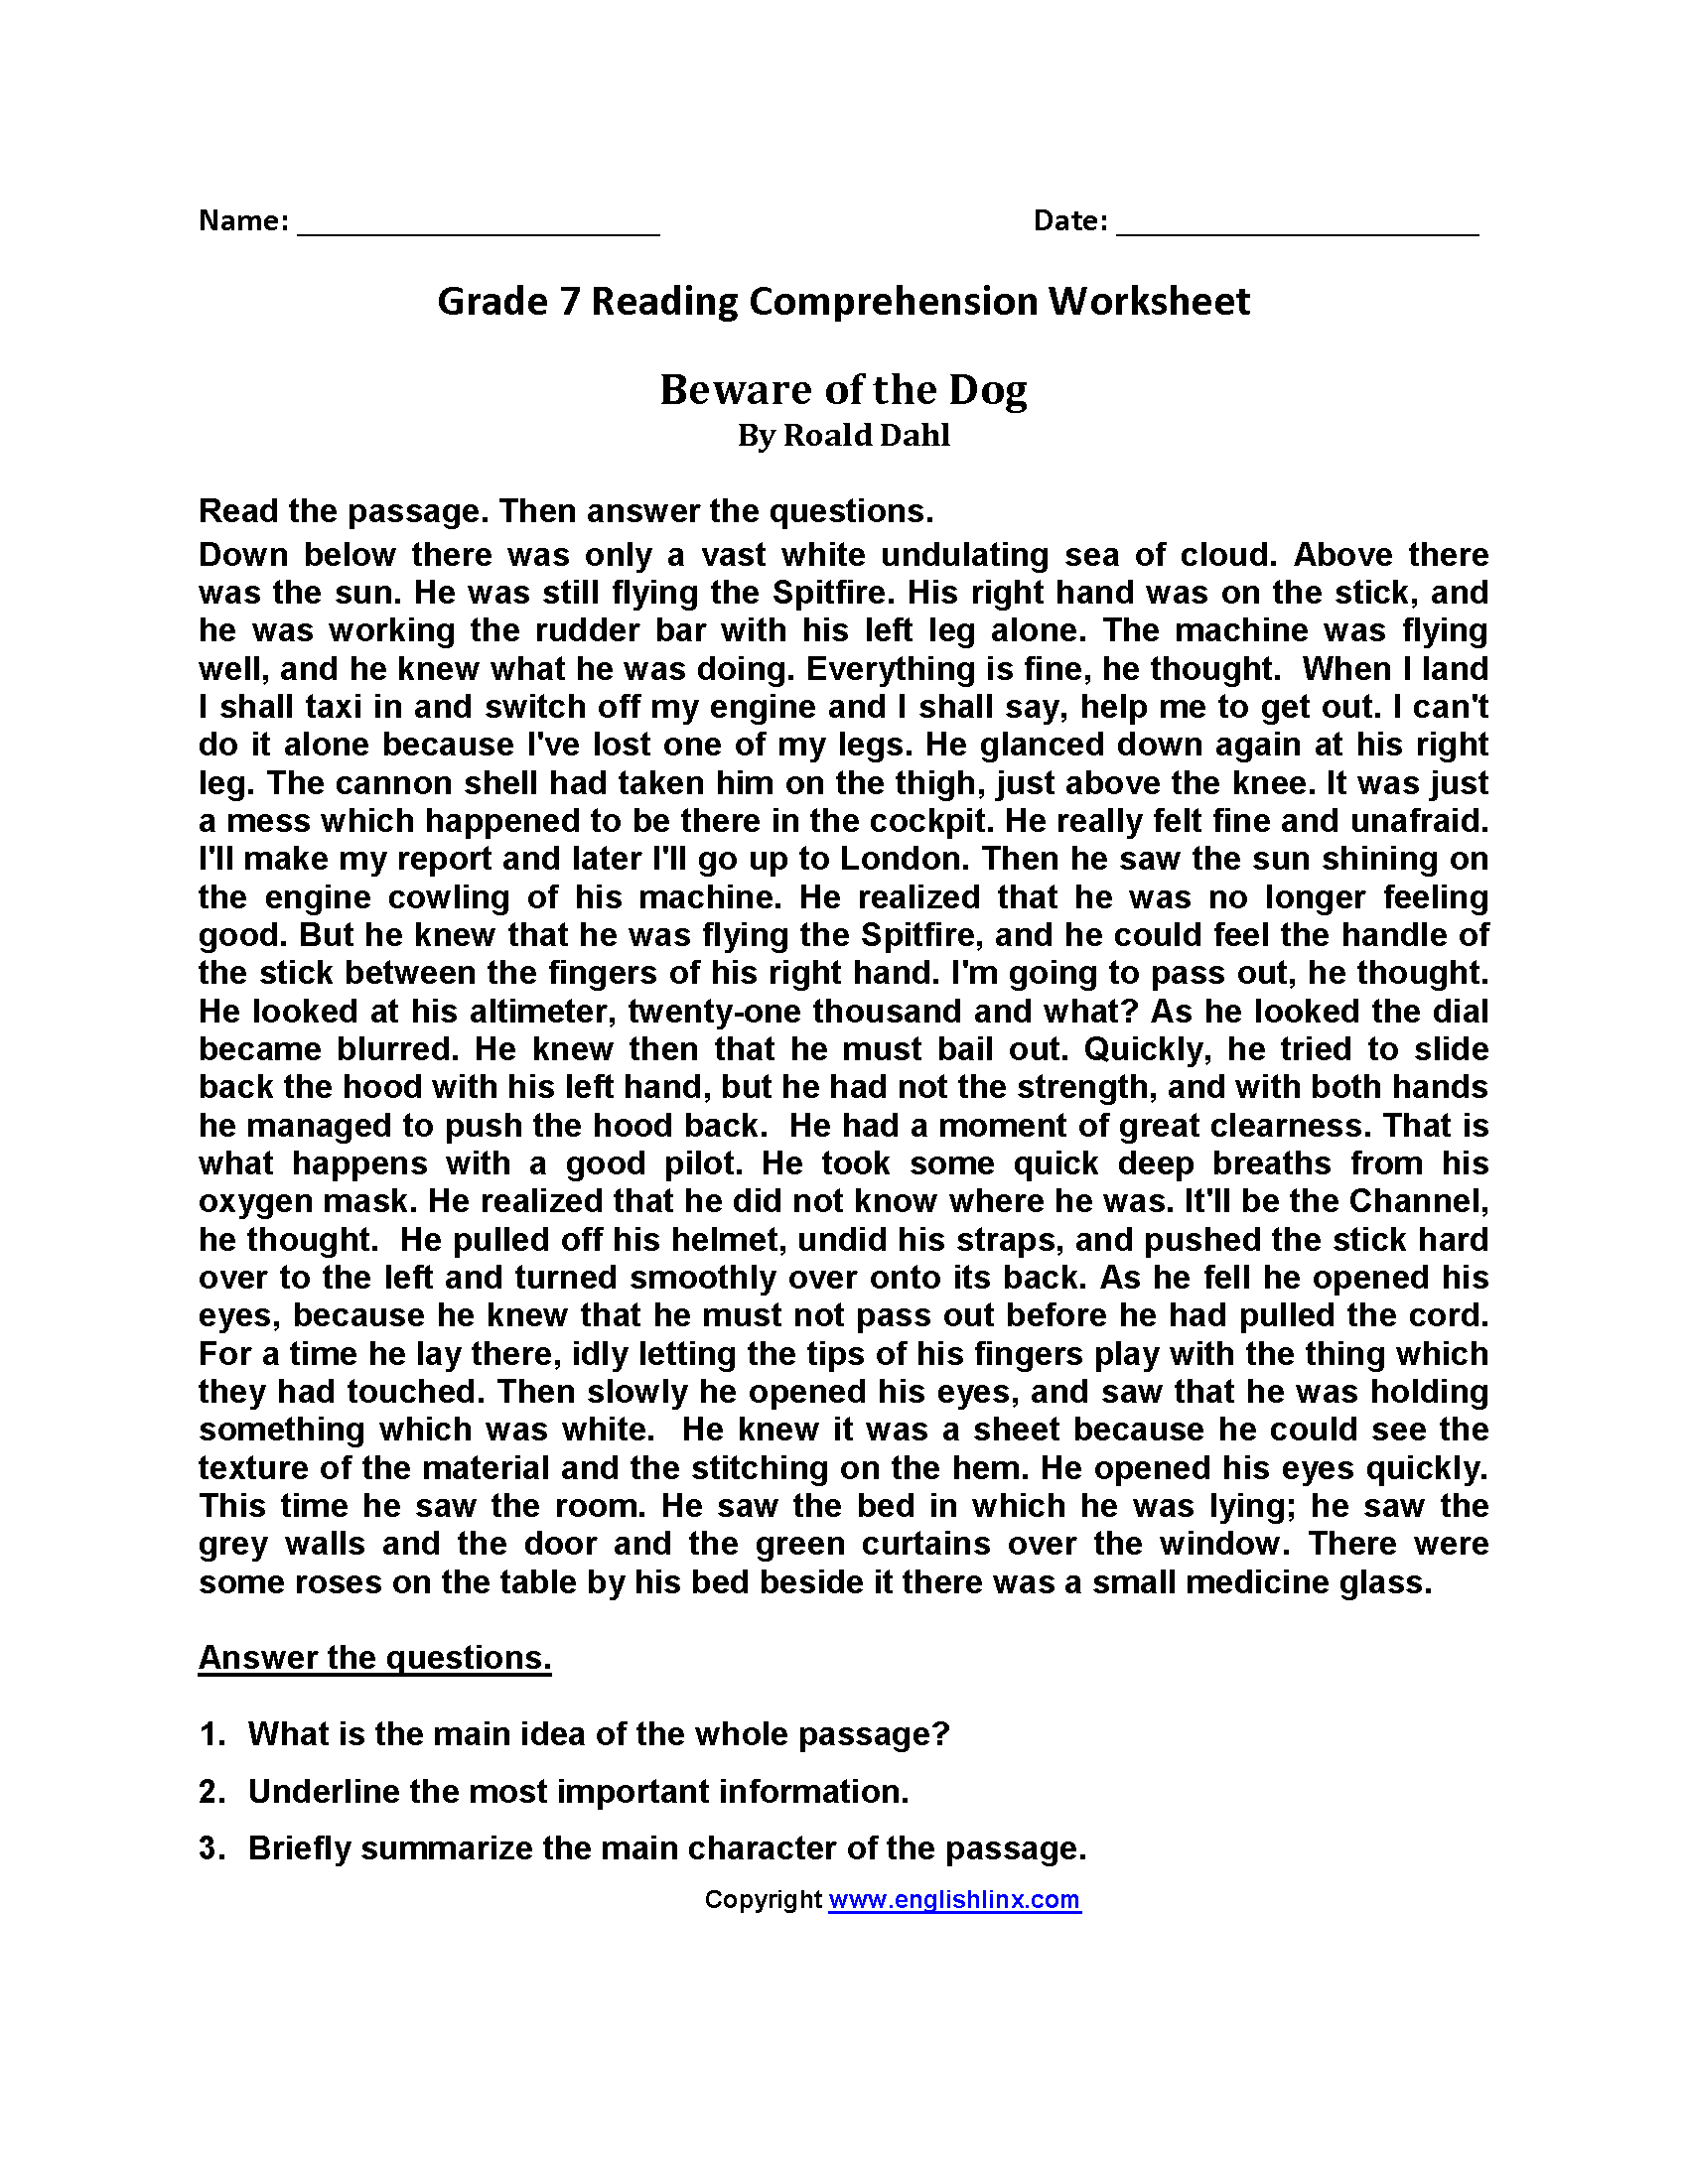 Worksheet Free Printable 7th Grade Reading Comprehension Worksheets Grass Fedjp Worksheet